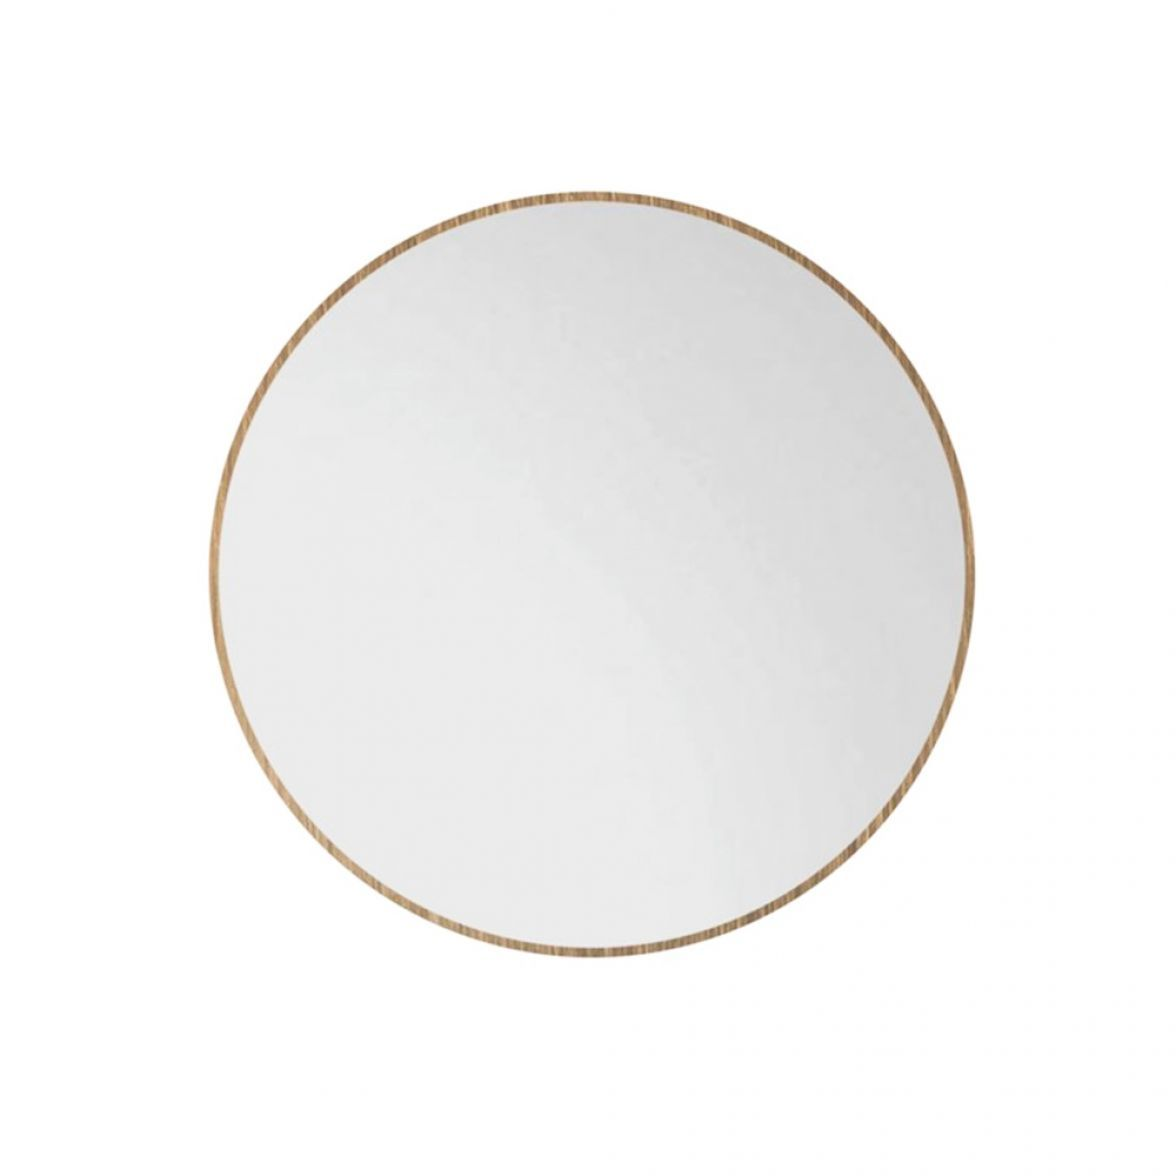 TRILOGY T mirror